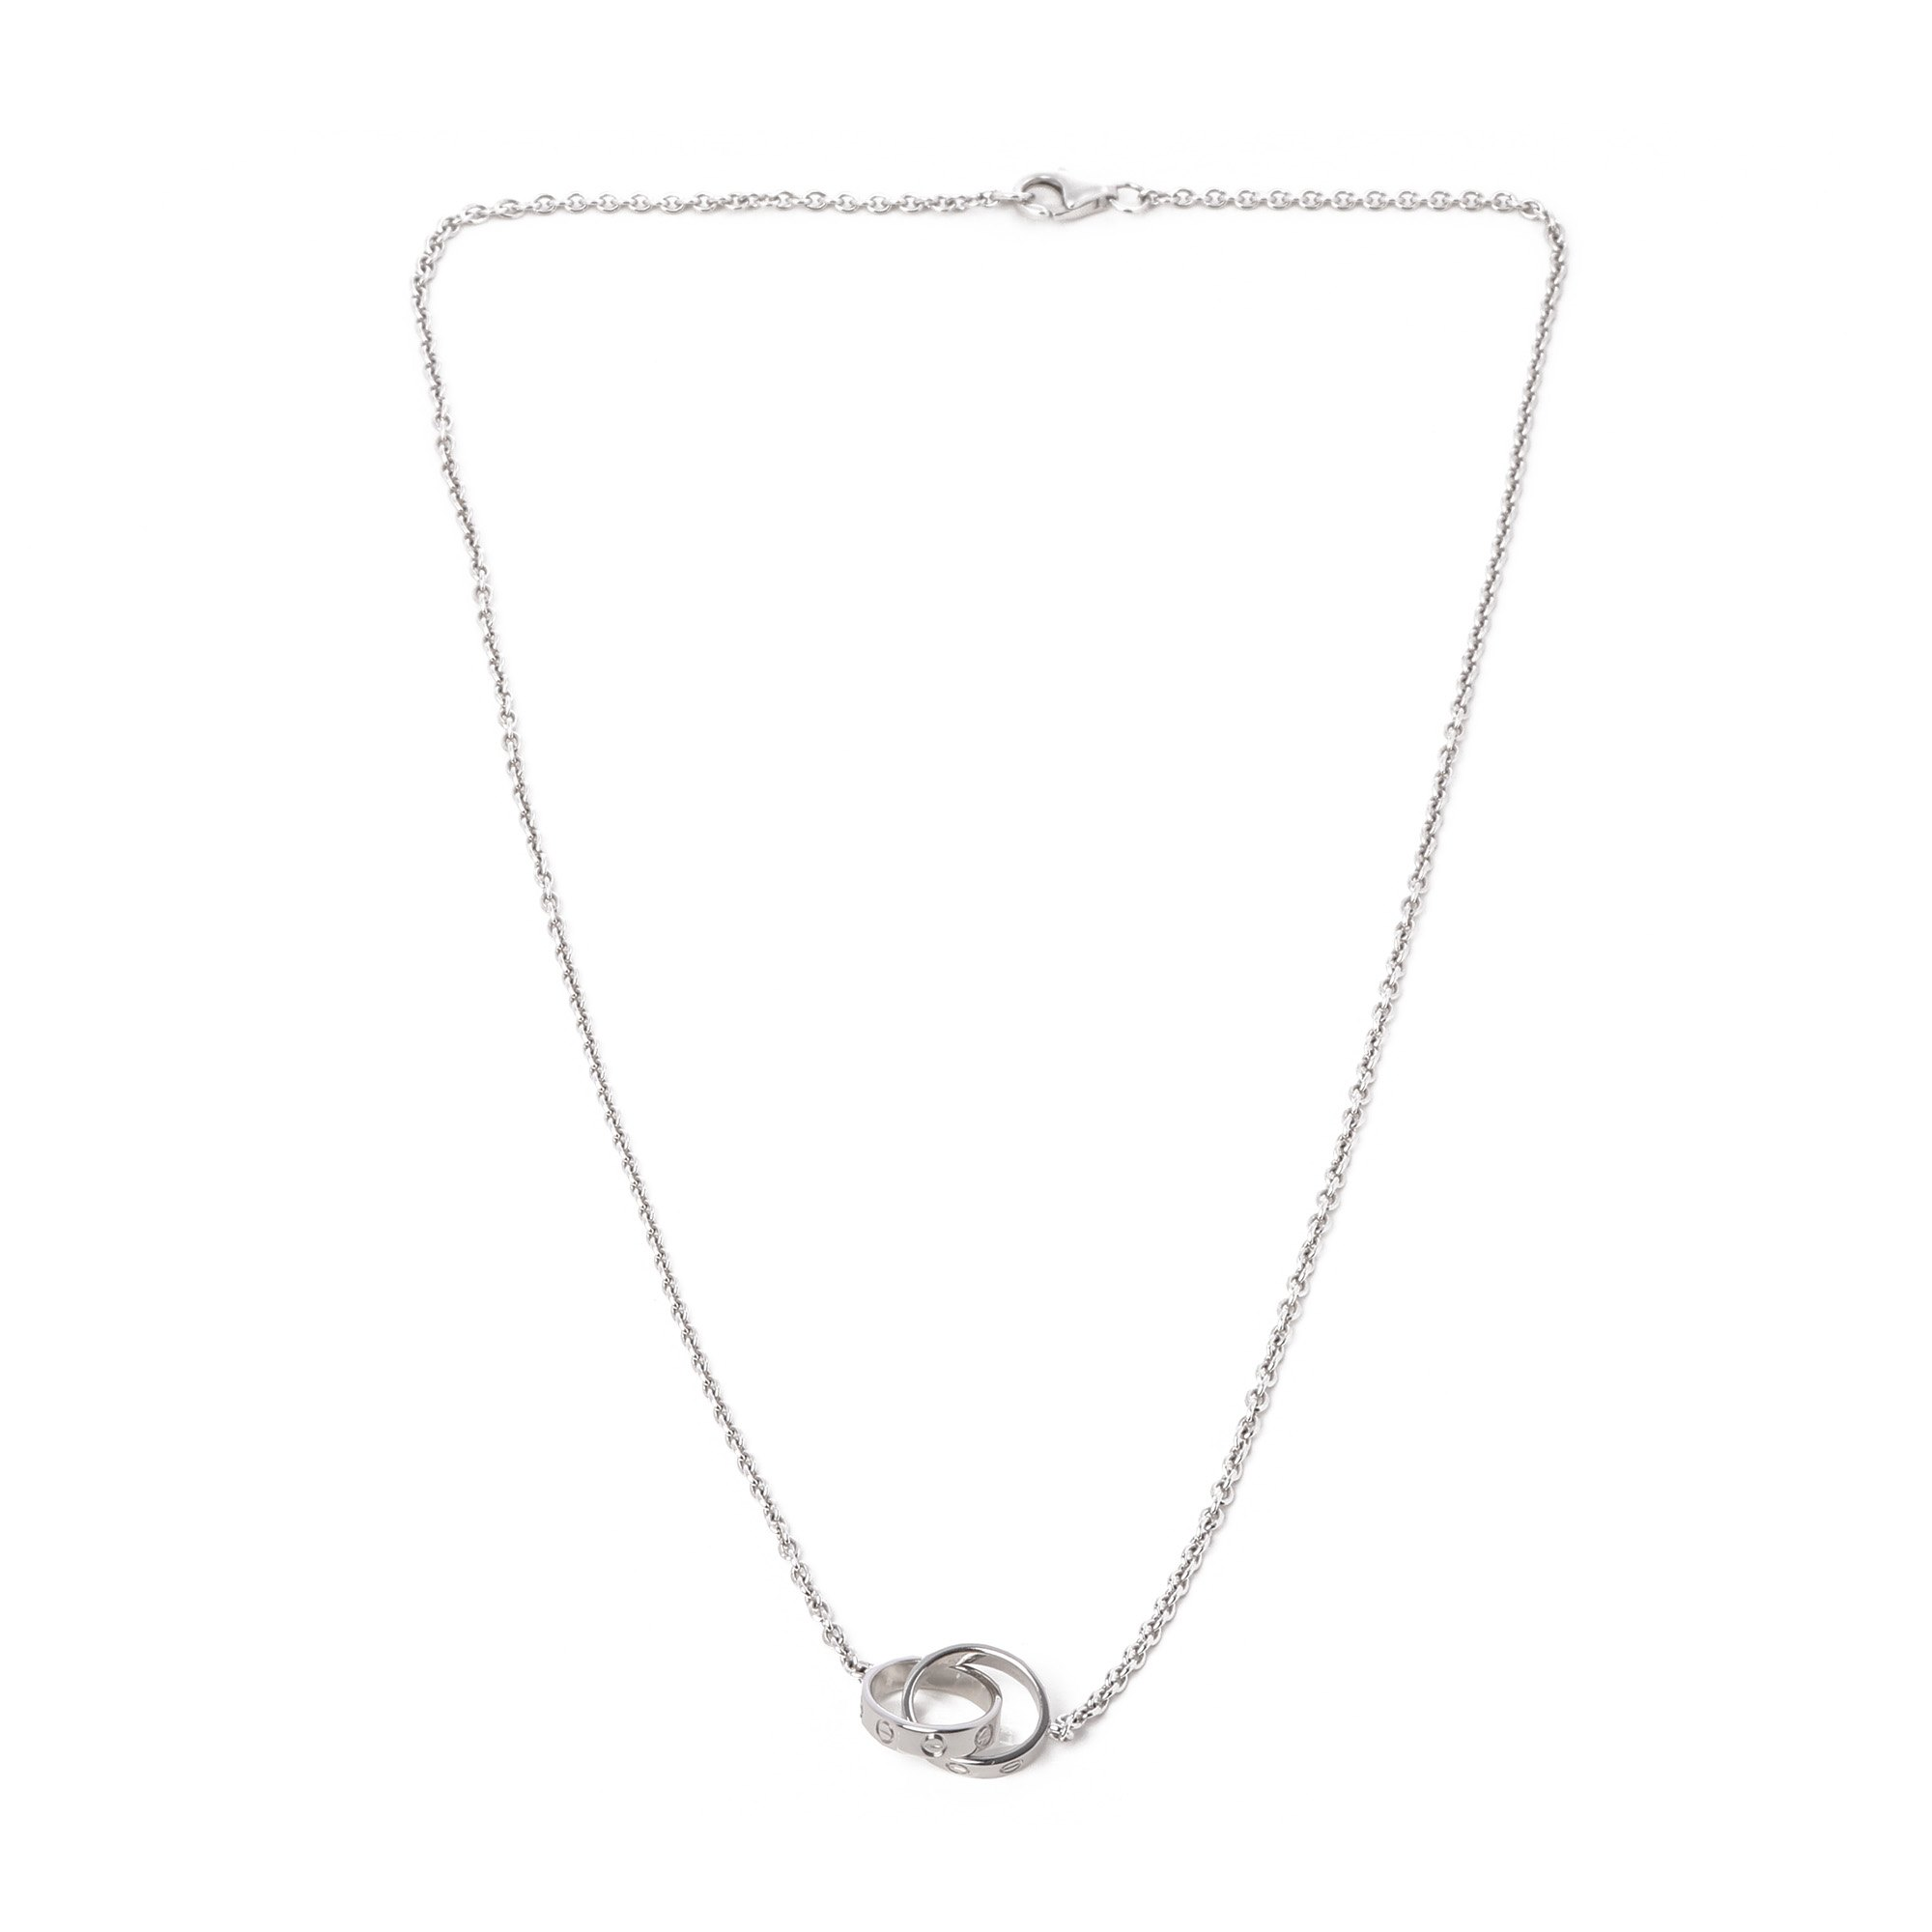 Cartier Love 18ct White Gold Necklace